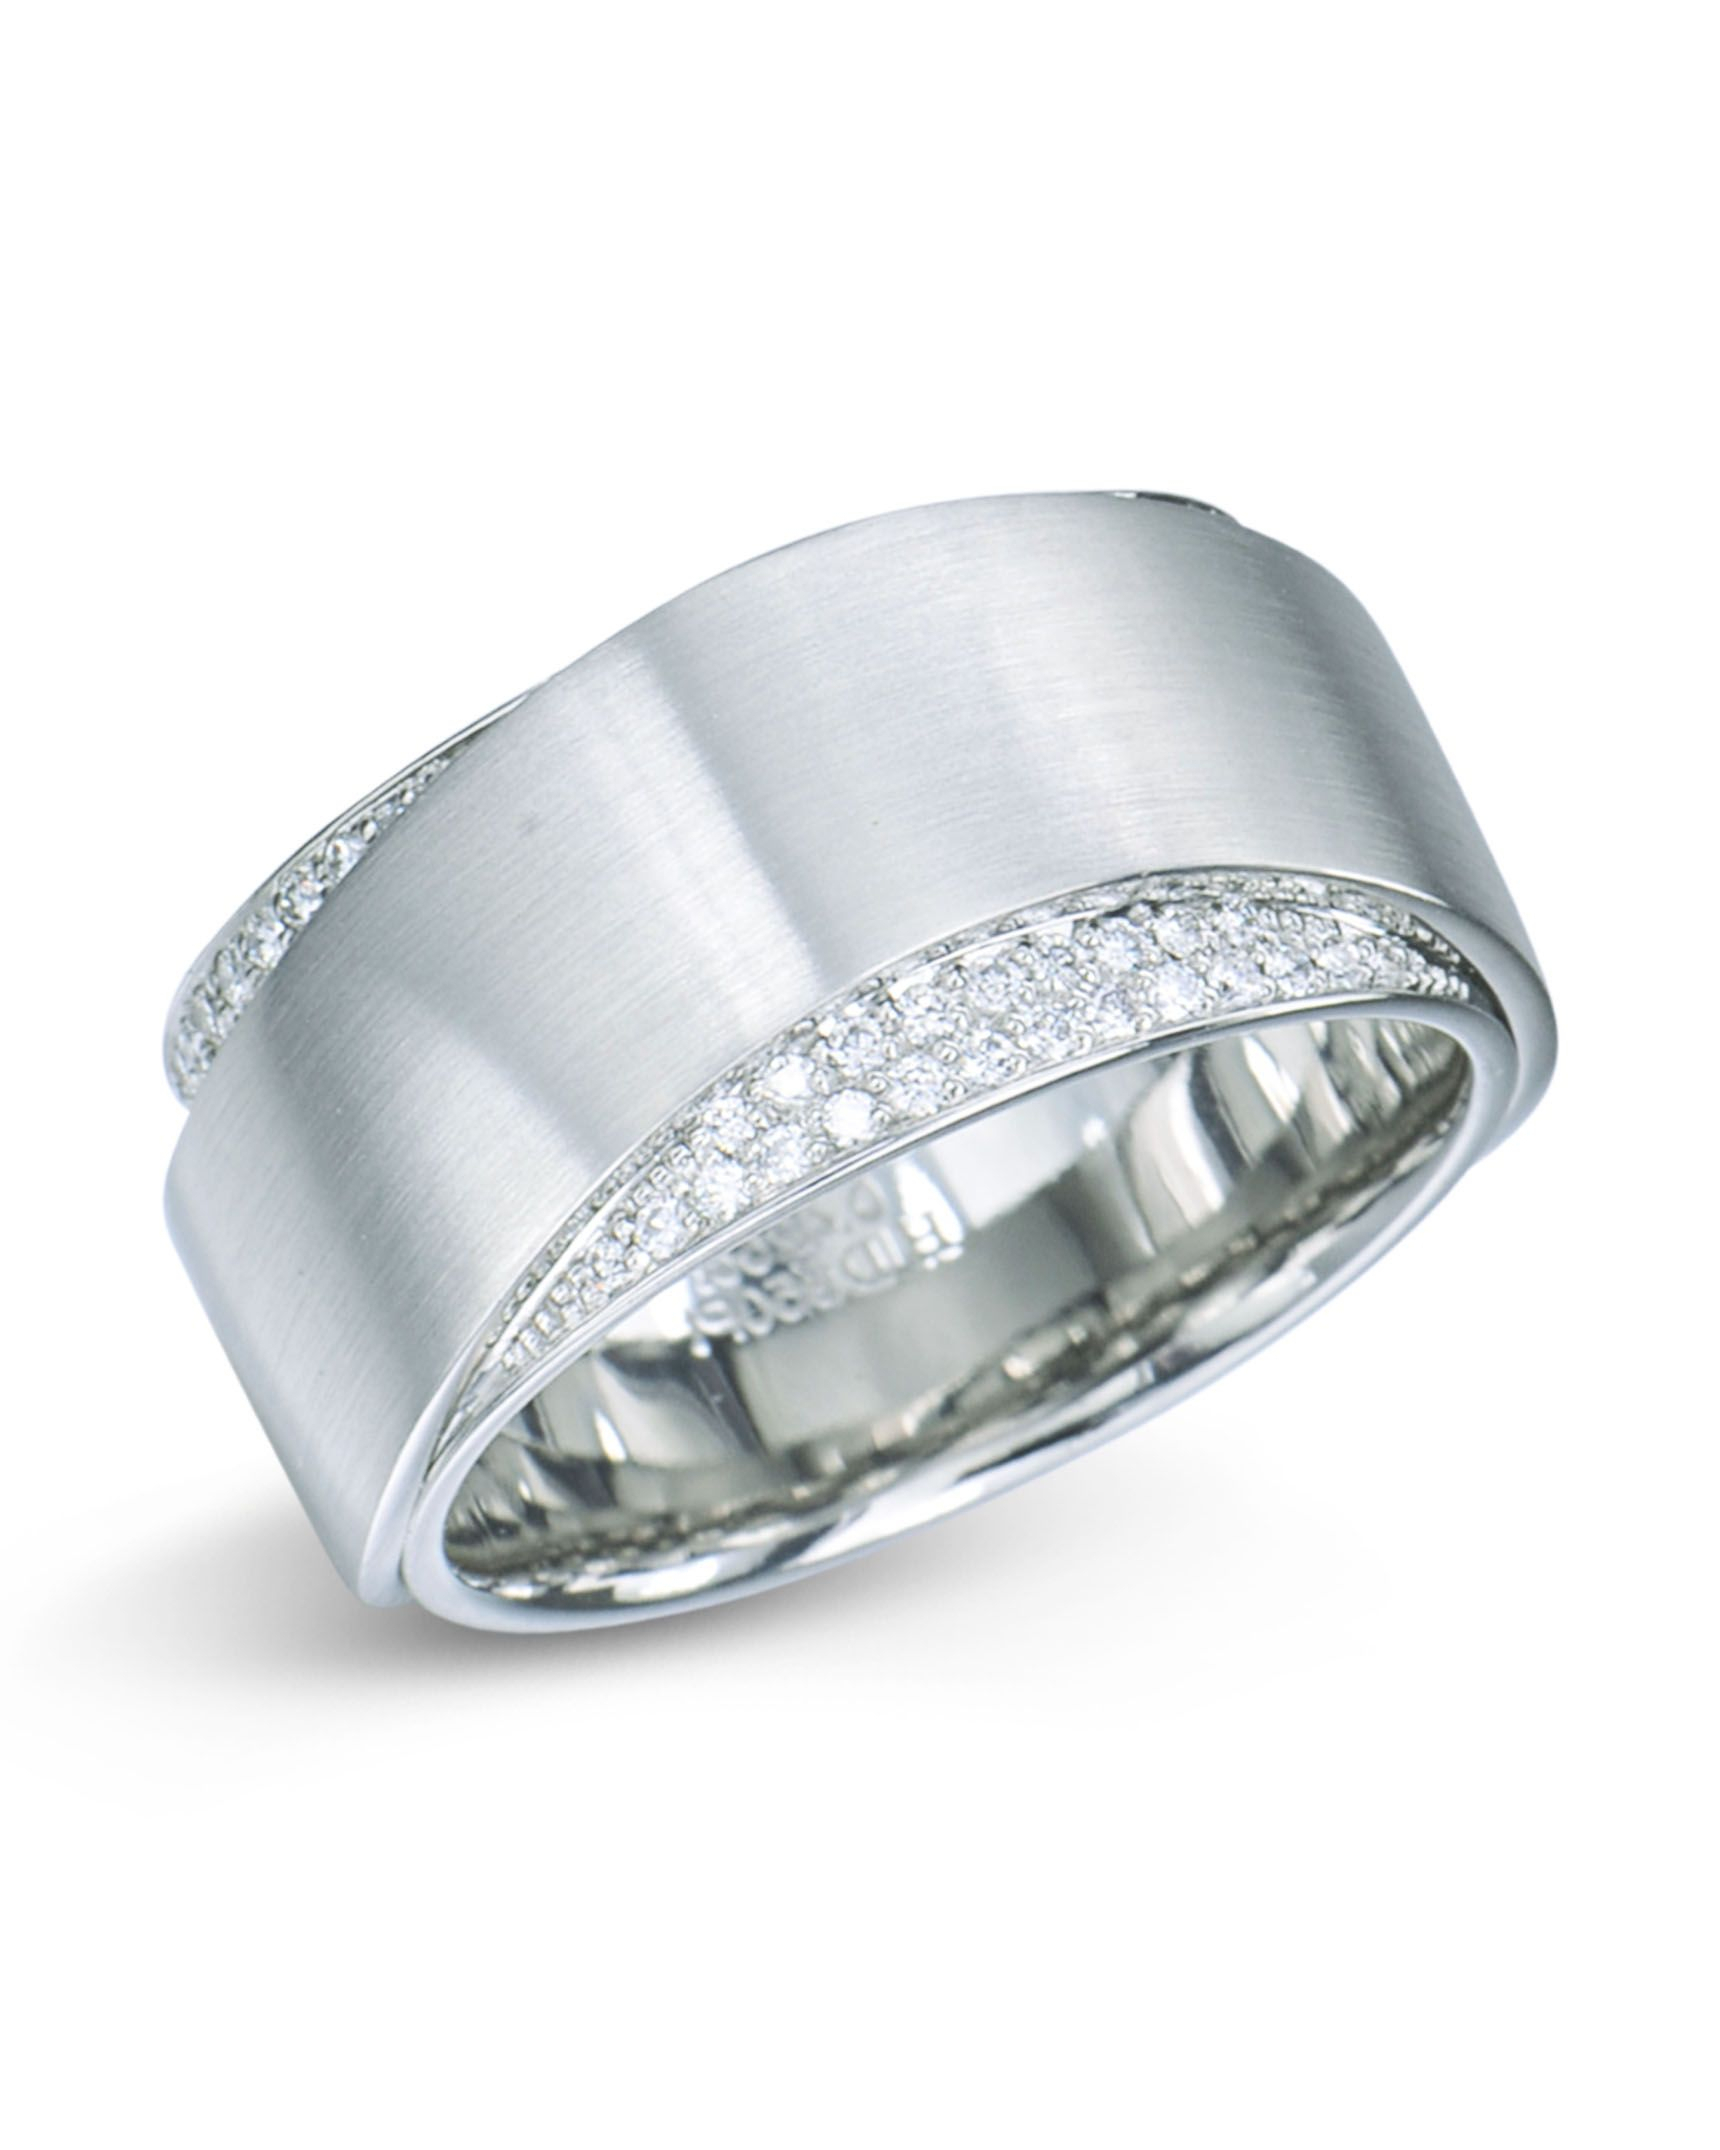 Platinum Wave Design Pavé Set Diamond Wedding Band In 2019 With Regard To Most Up To Date Wave Diamond Wedding Bands With Pavé (View 6 of 25)